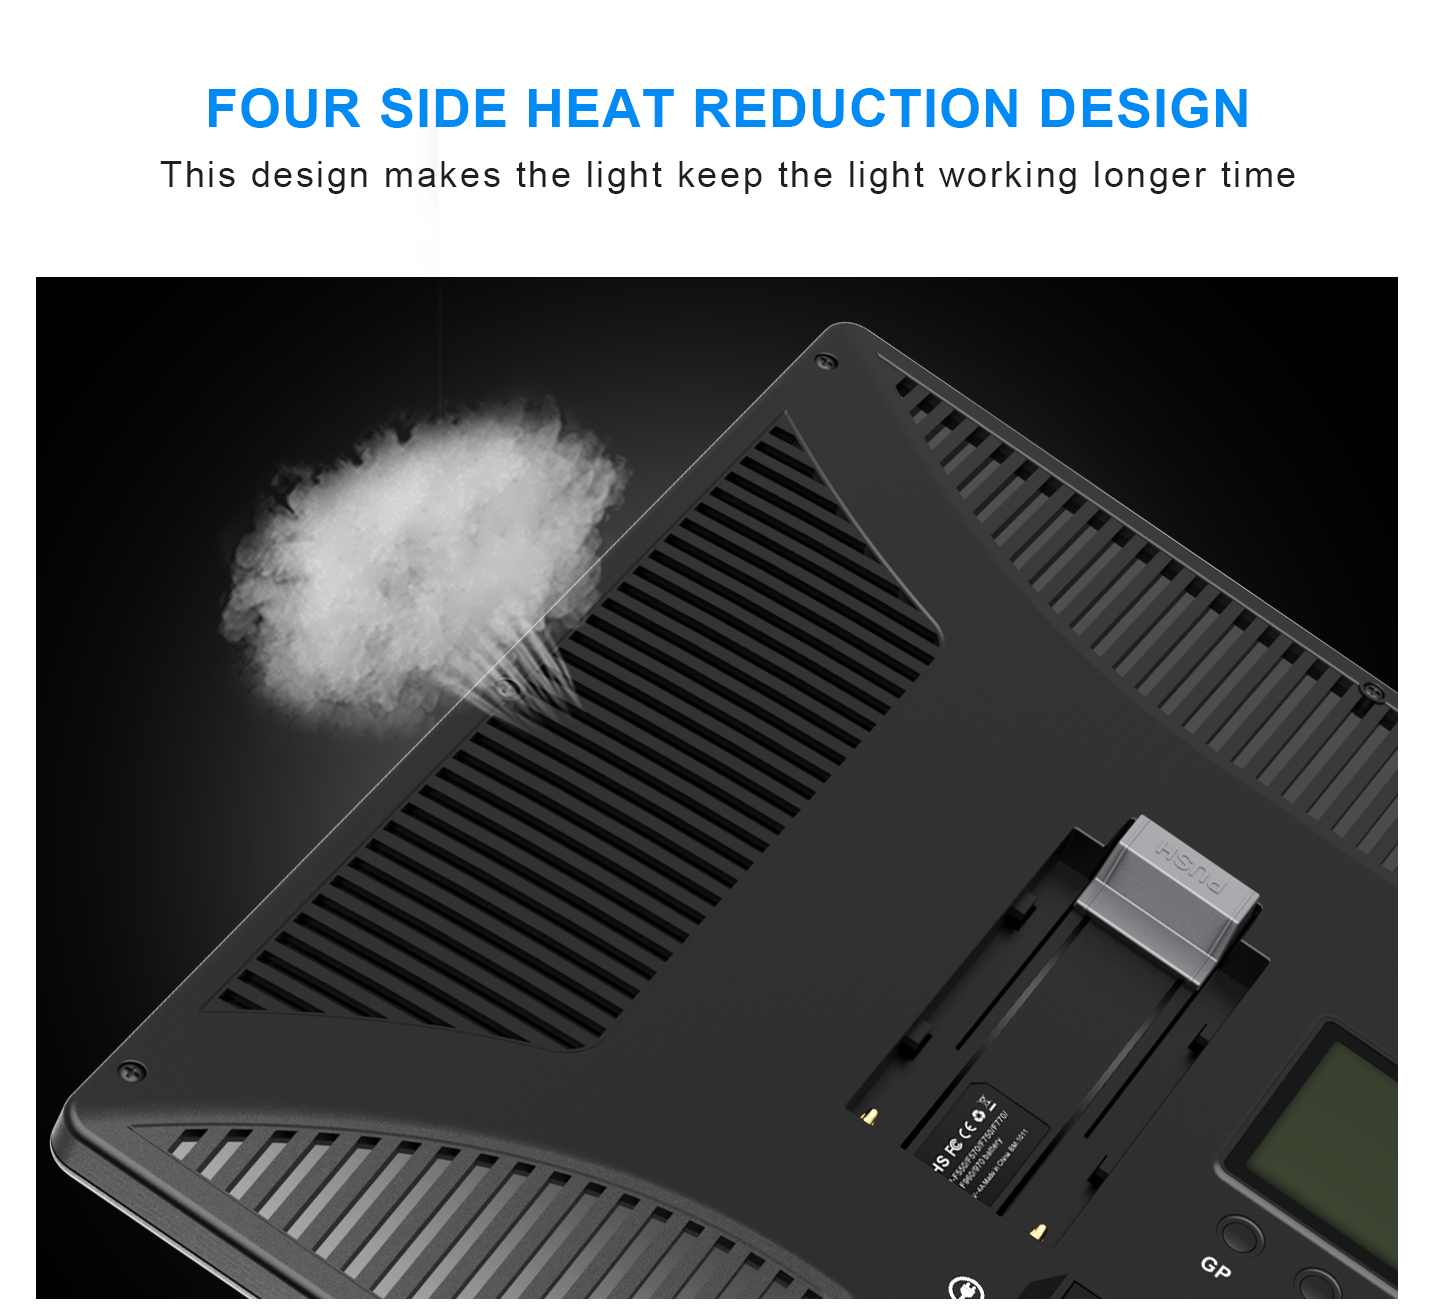 FOUR SIDE HEAT REDUCTION DESIGN